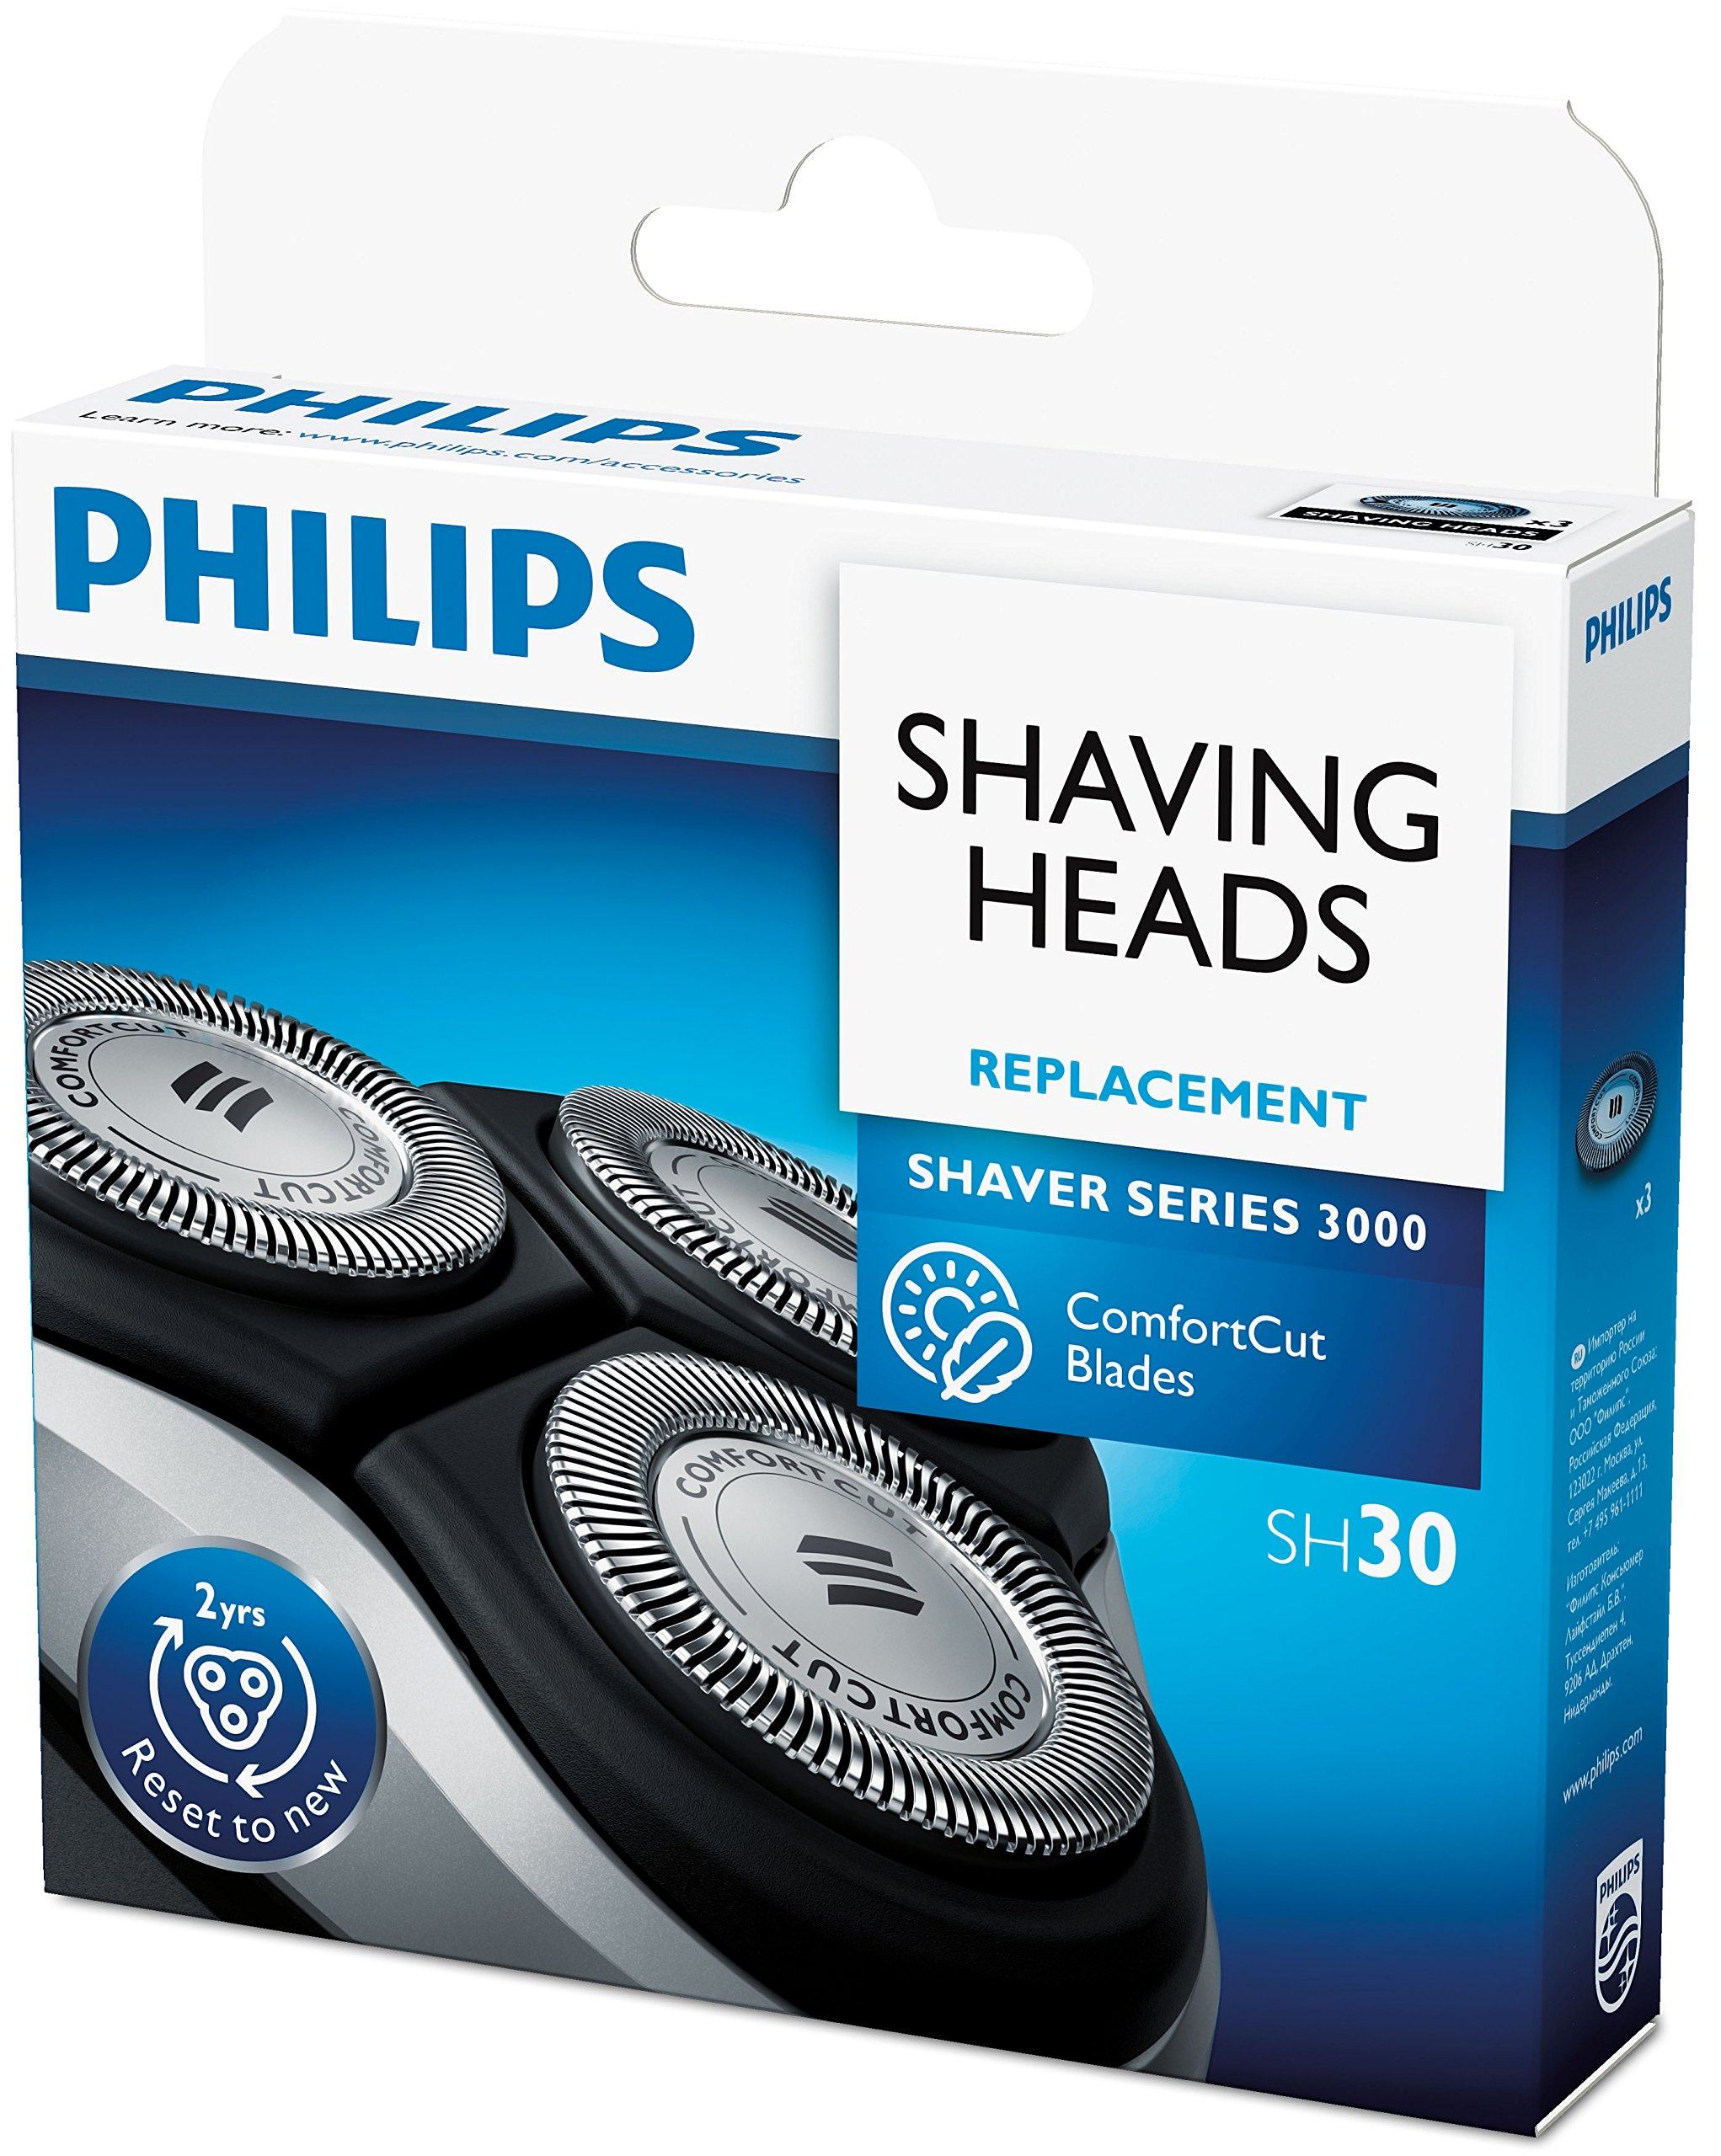 Philips Series 3000 Replacement Shaver Head SH30/50